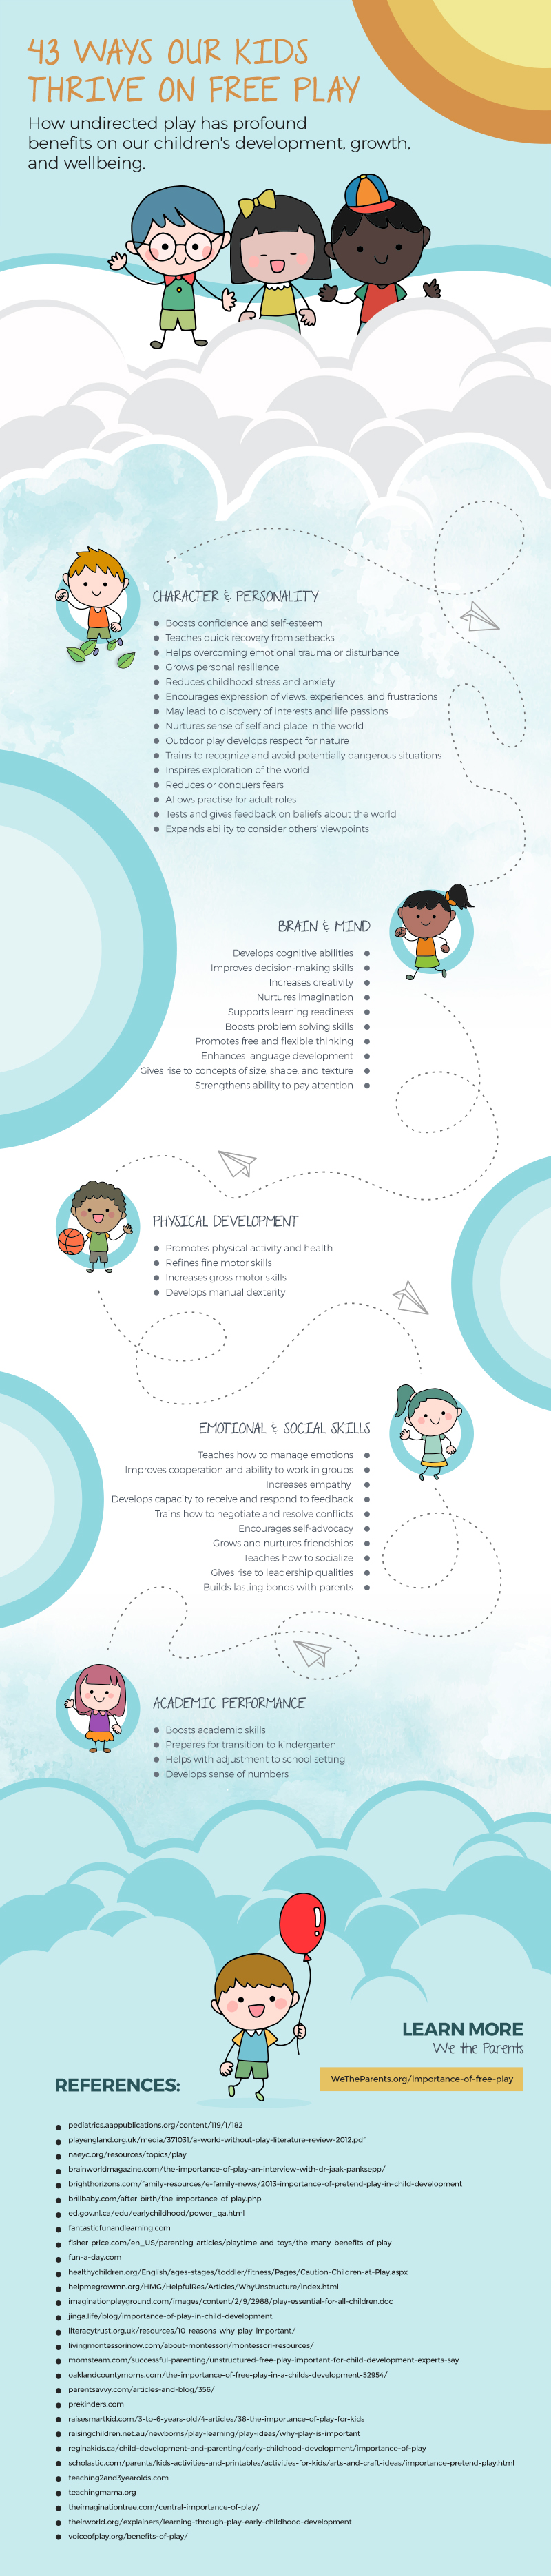 Infographic showing the benefits of child-led free play